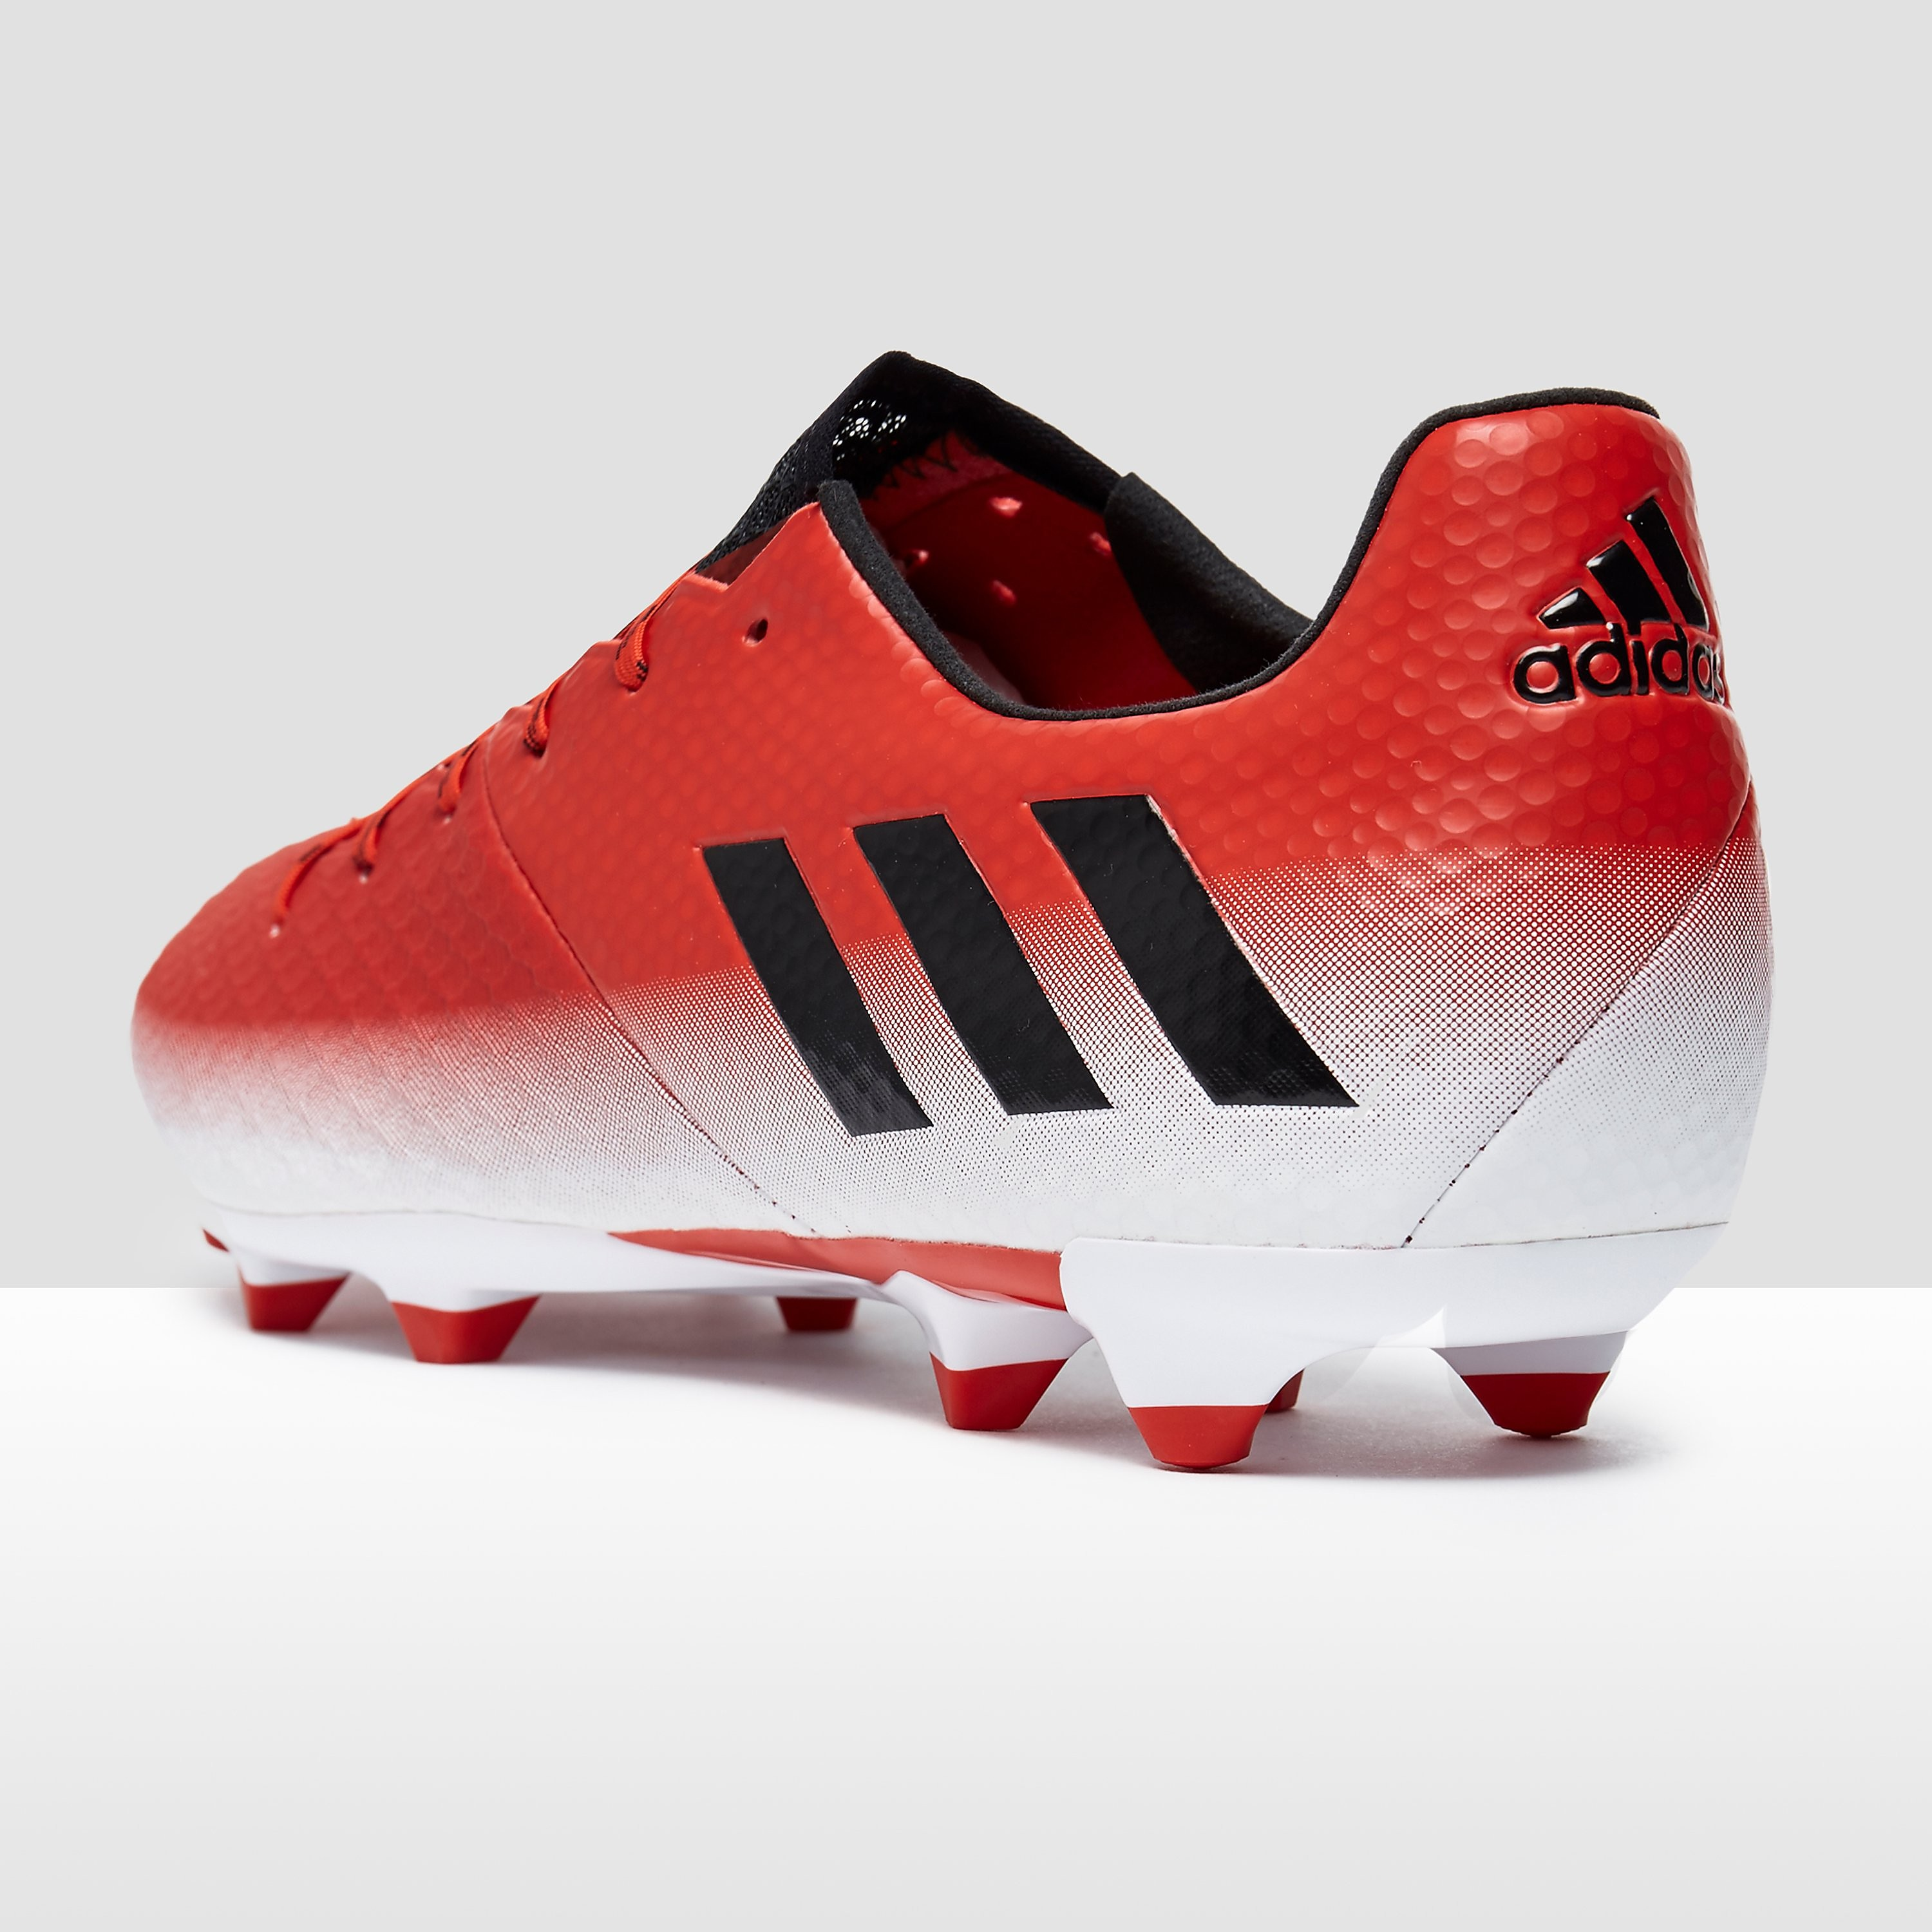 adidas Red Limit Messi 16.2 FG Football Boots